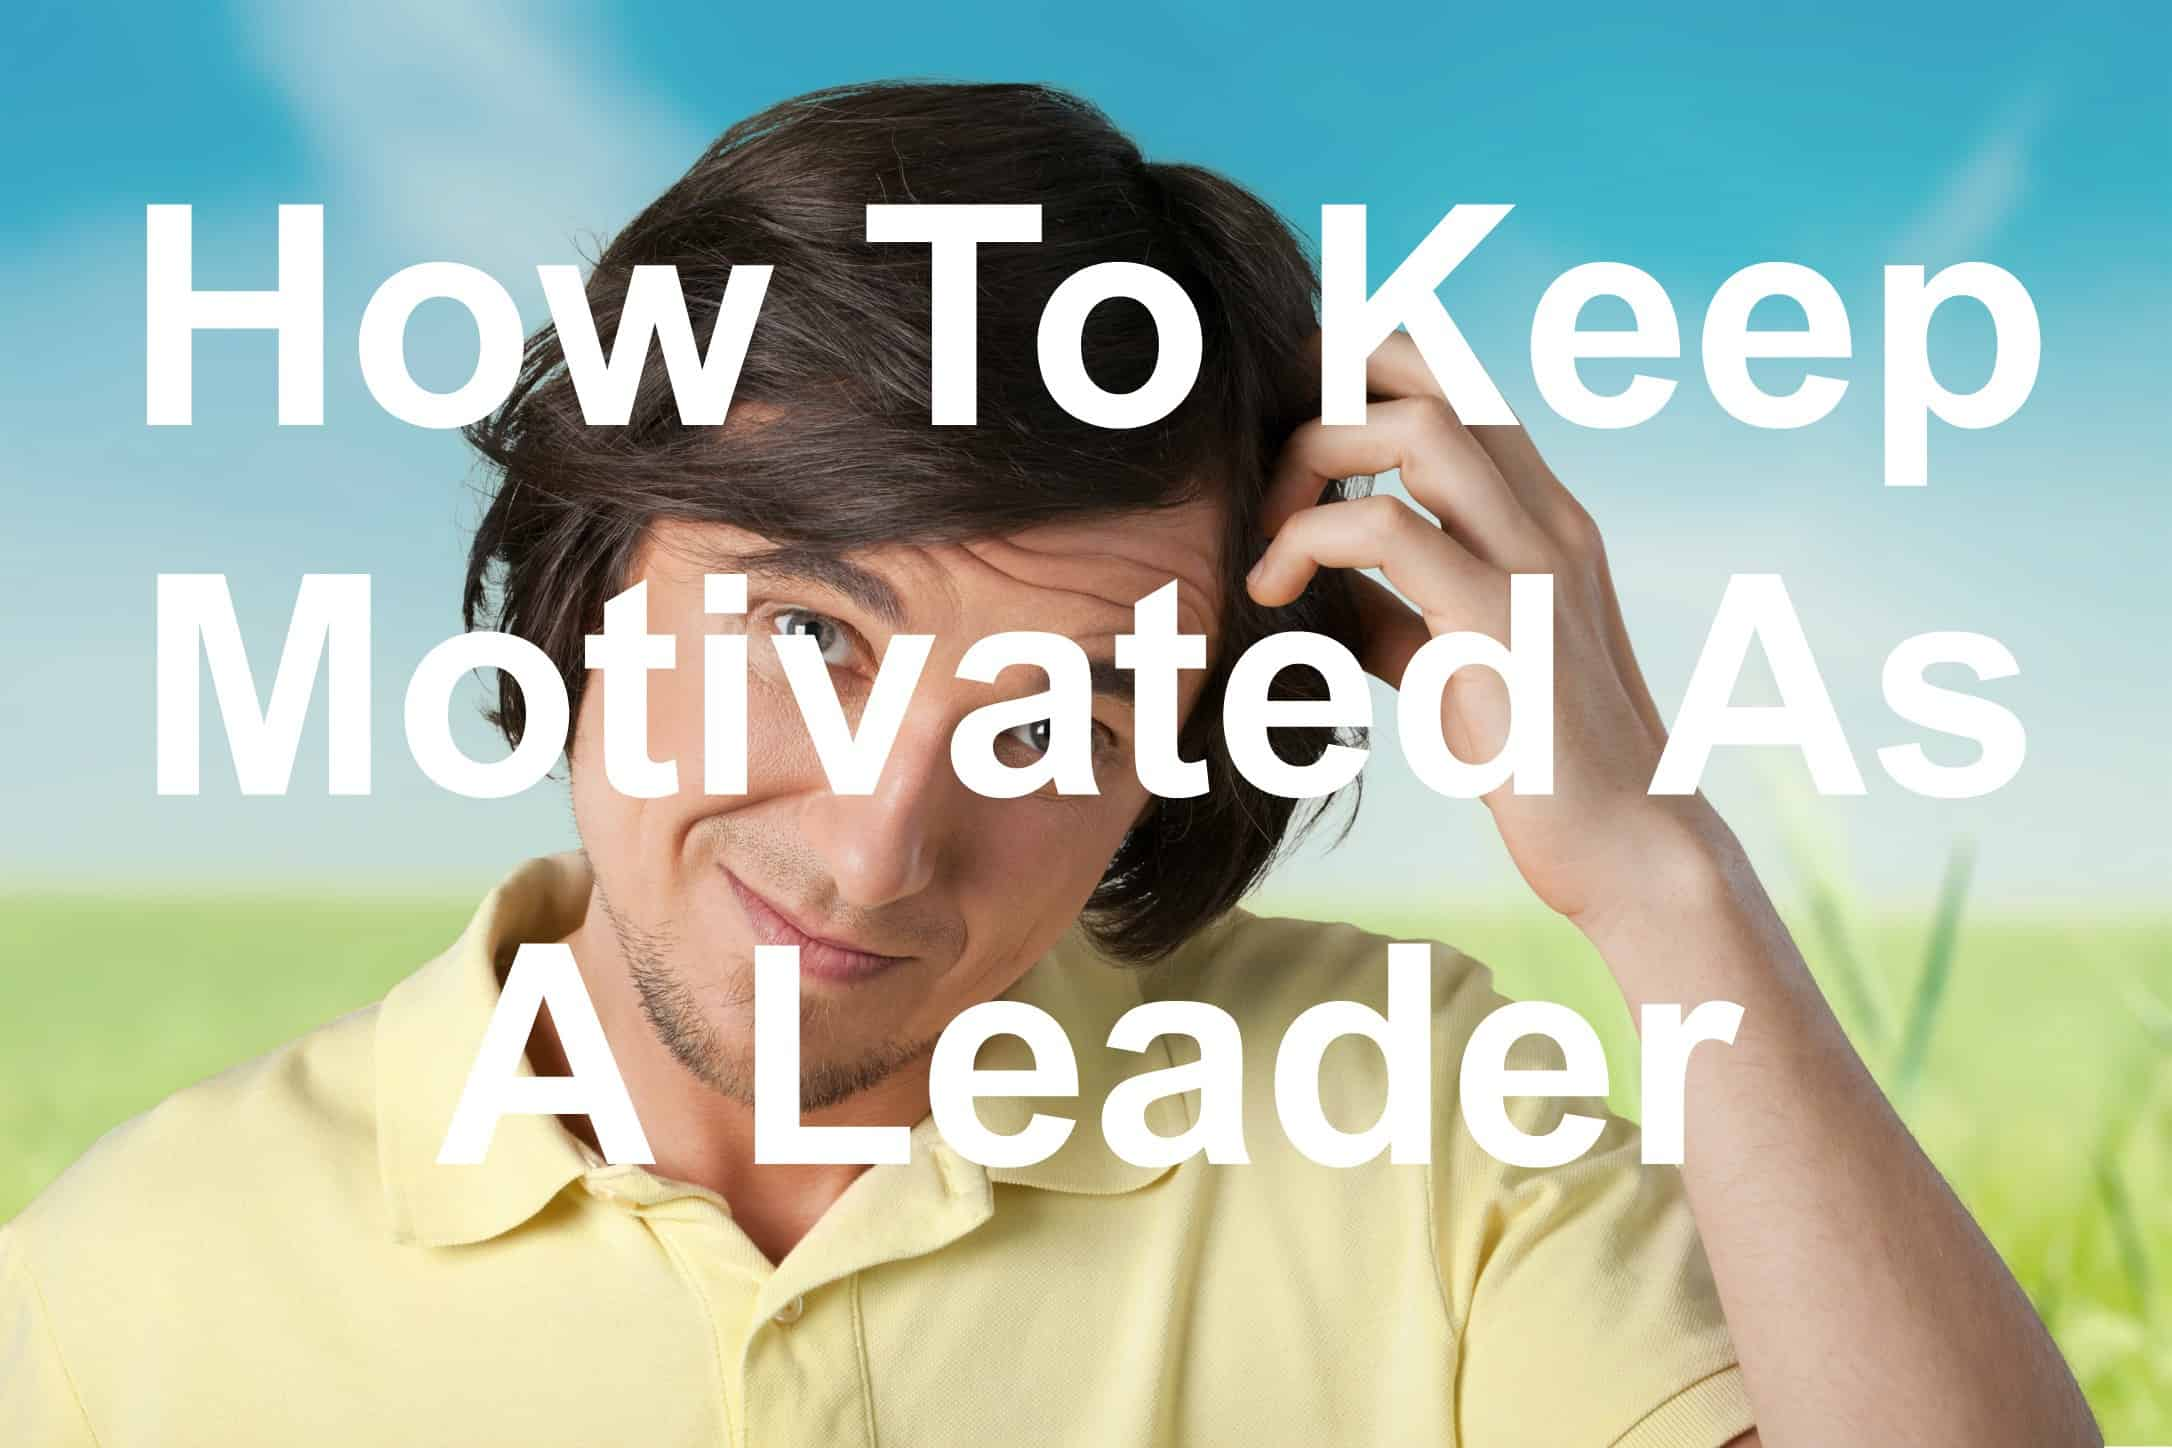 You can stay a motivated leader